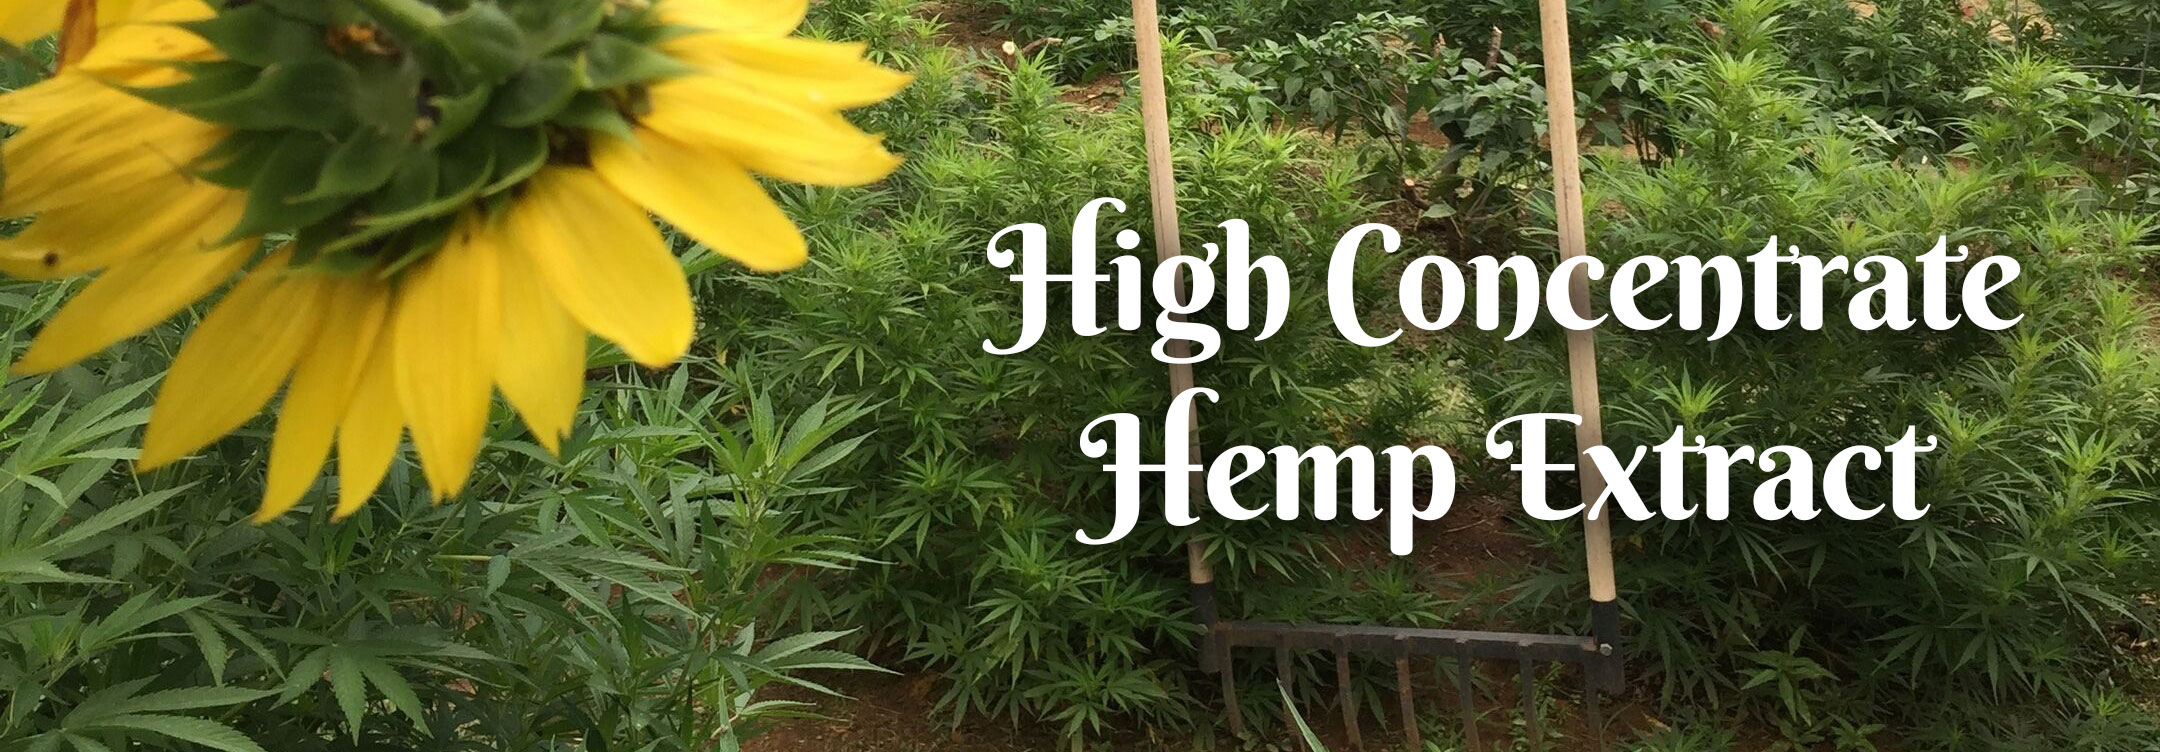 High Concentrate Hemp Extract